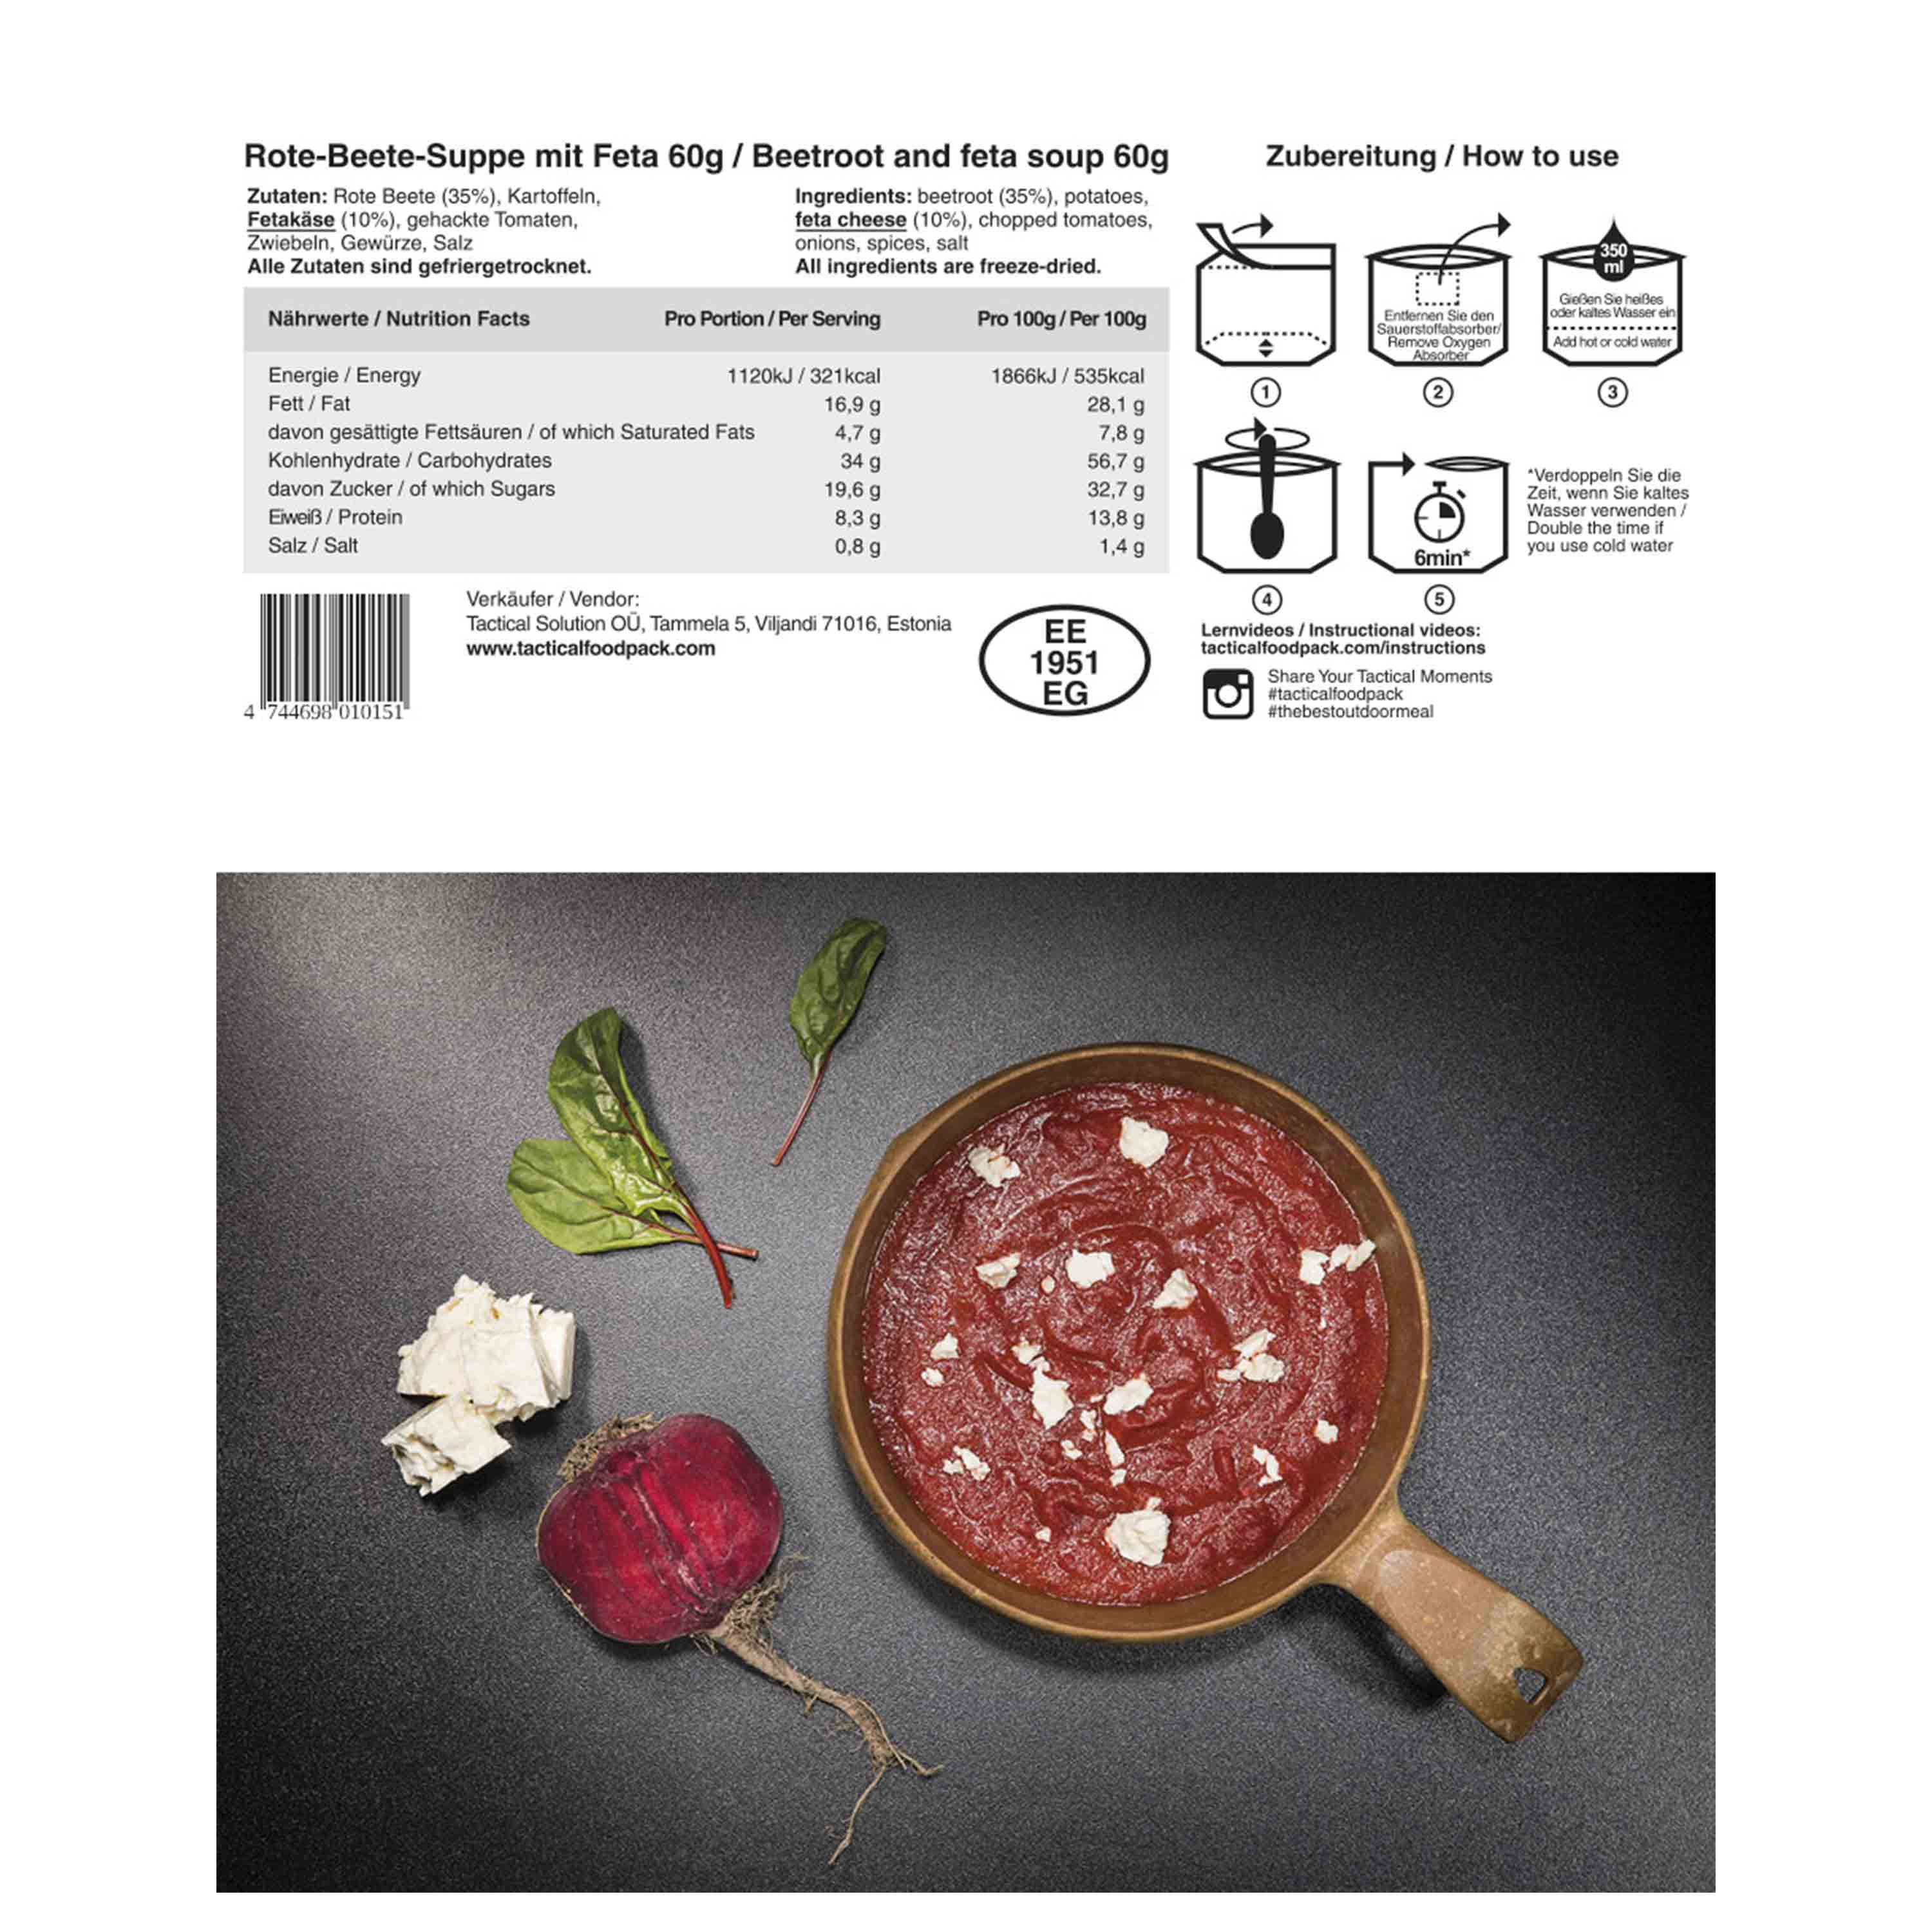 Tactical Foodpack Rote-Beete-Suppe mit Feta 60g